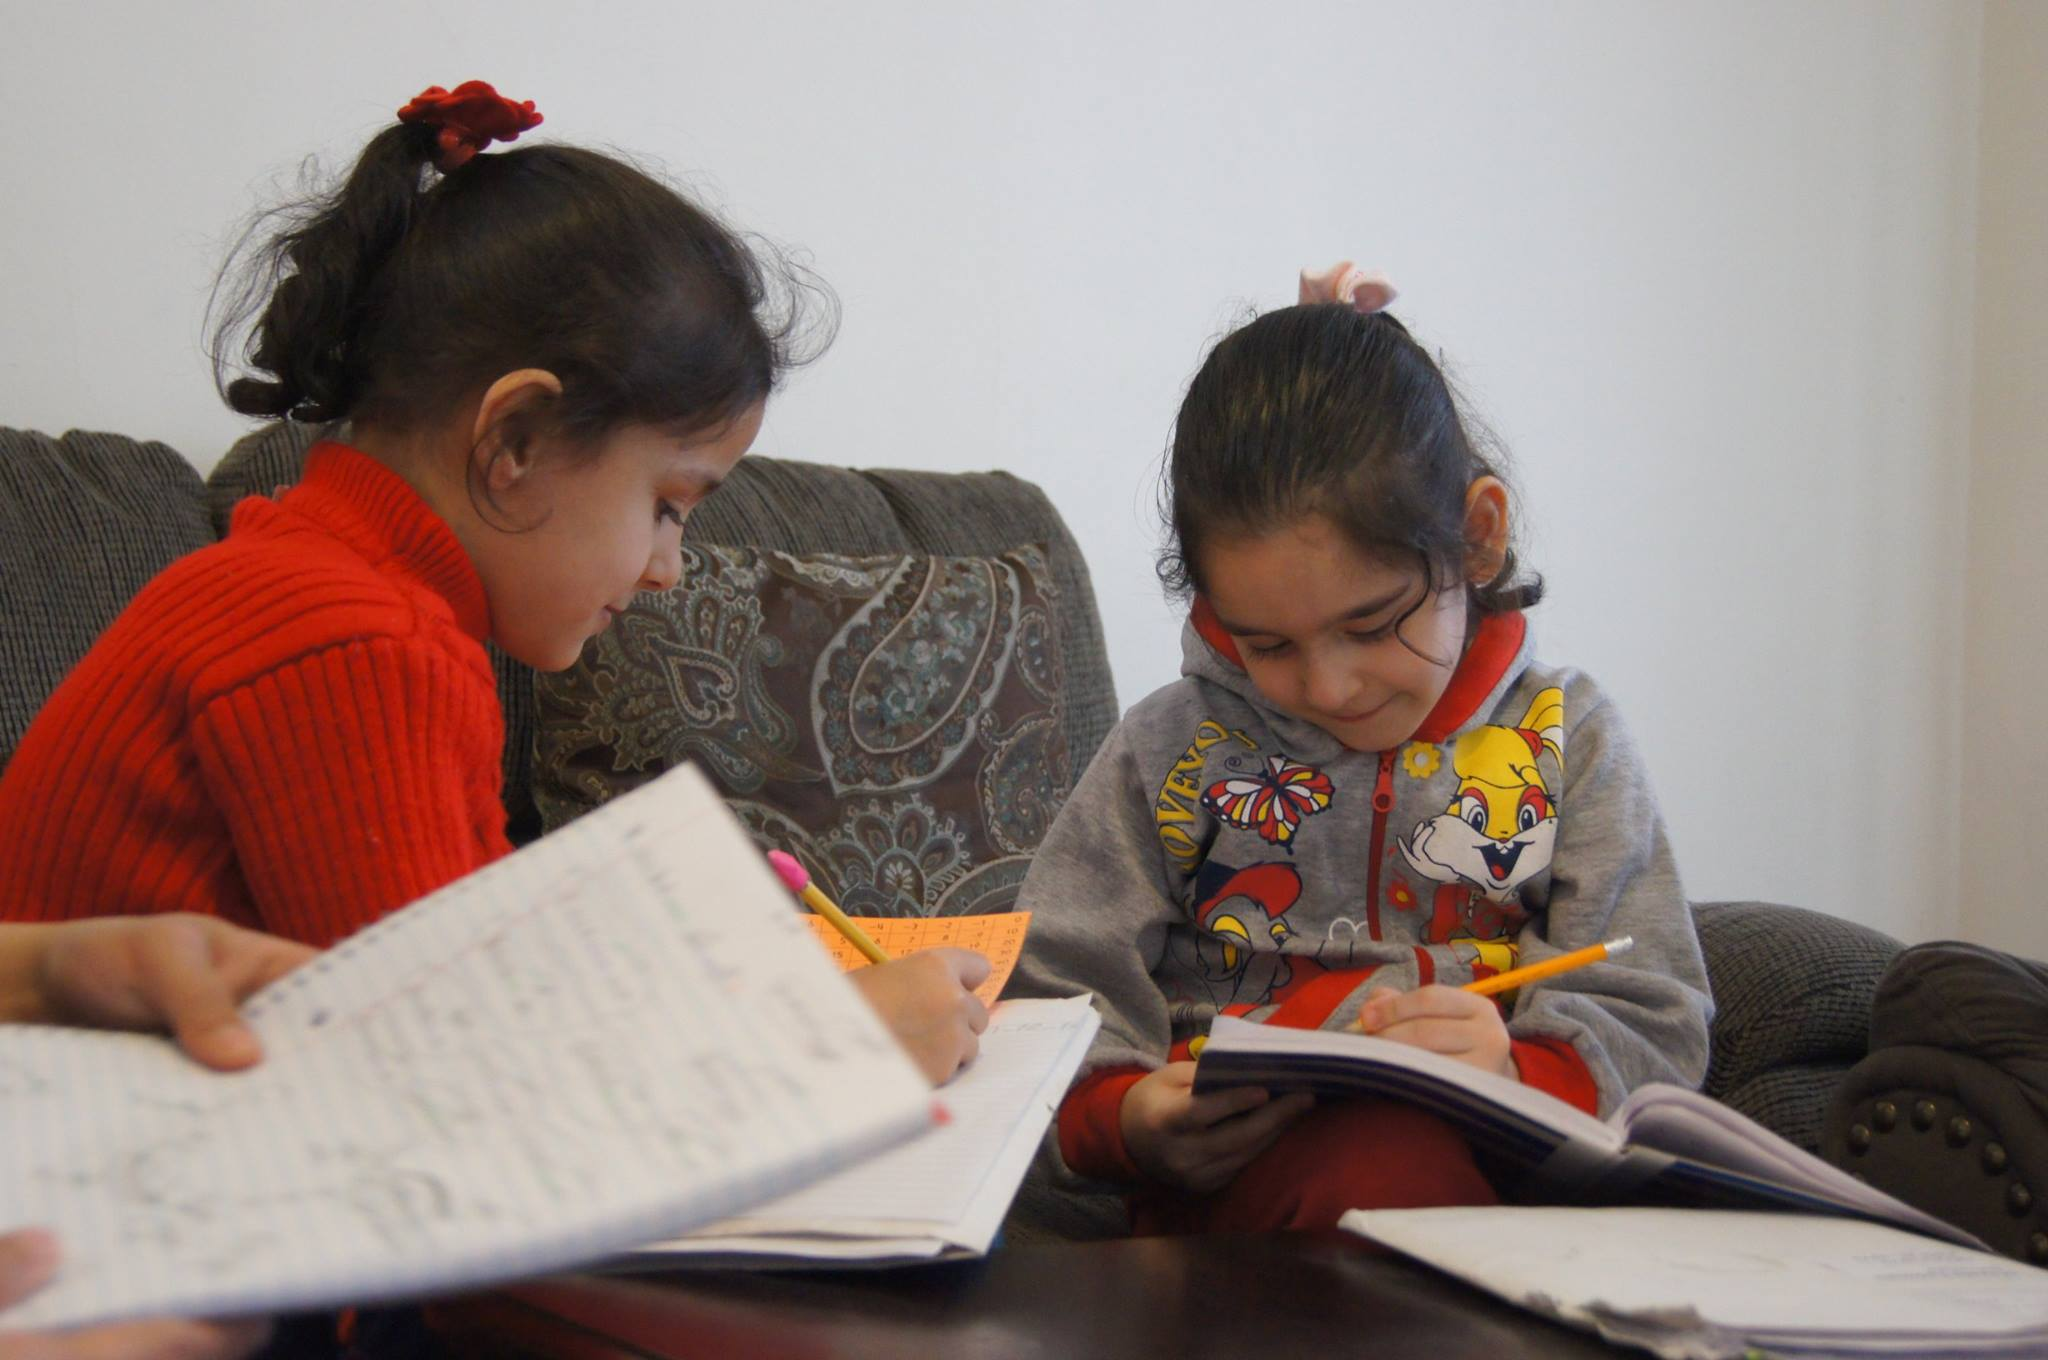 Shahd, 7, (in red) and Shaema, 4, completing their homework while volunteer from RefugeeOne teaches her mother and siblings English.